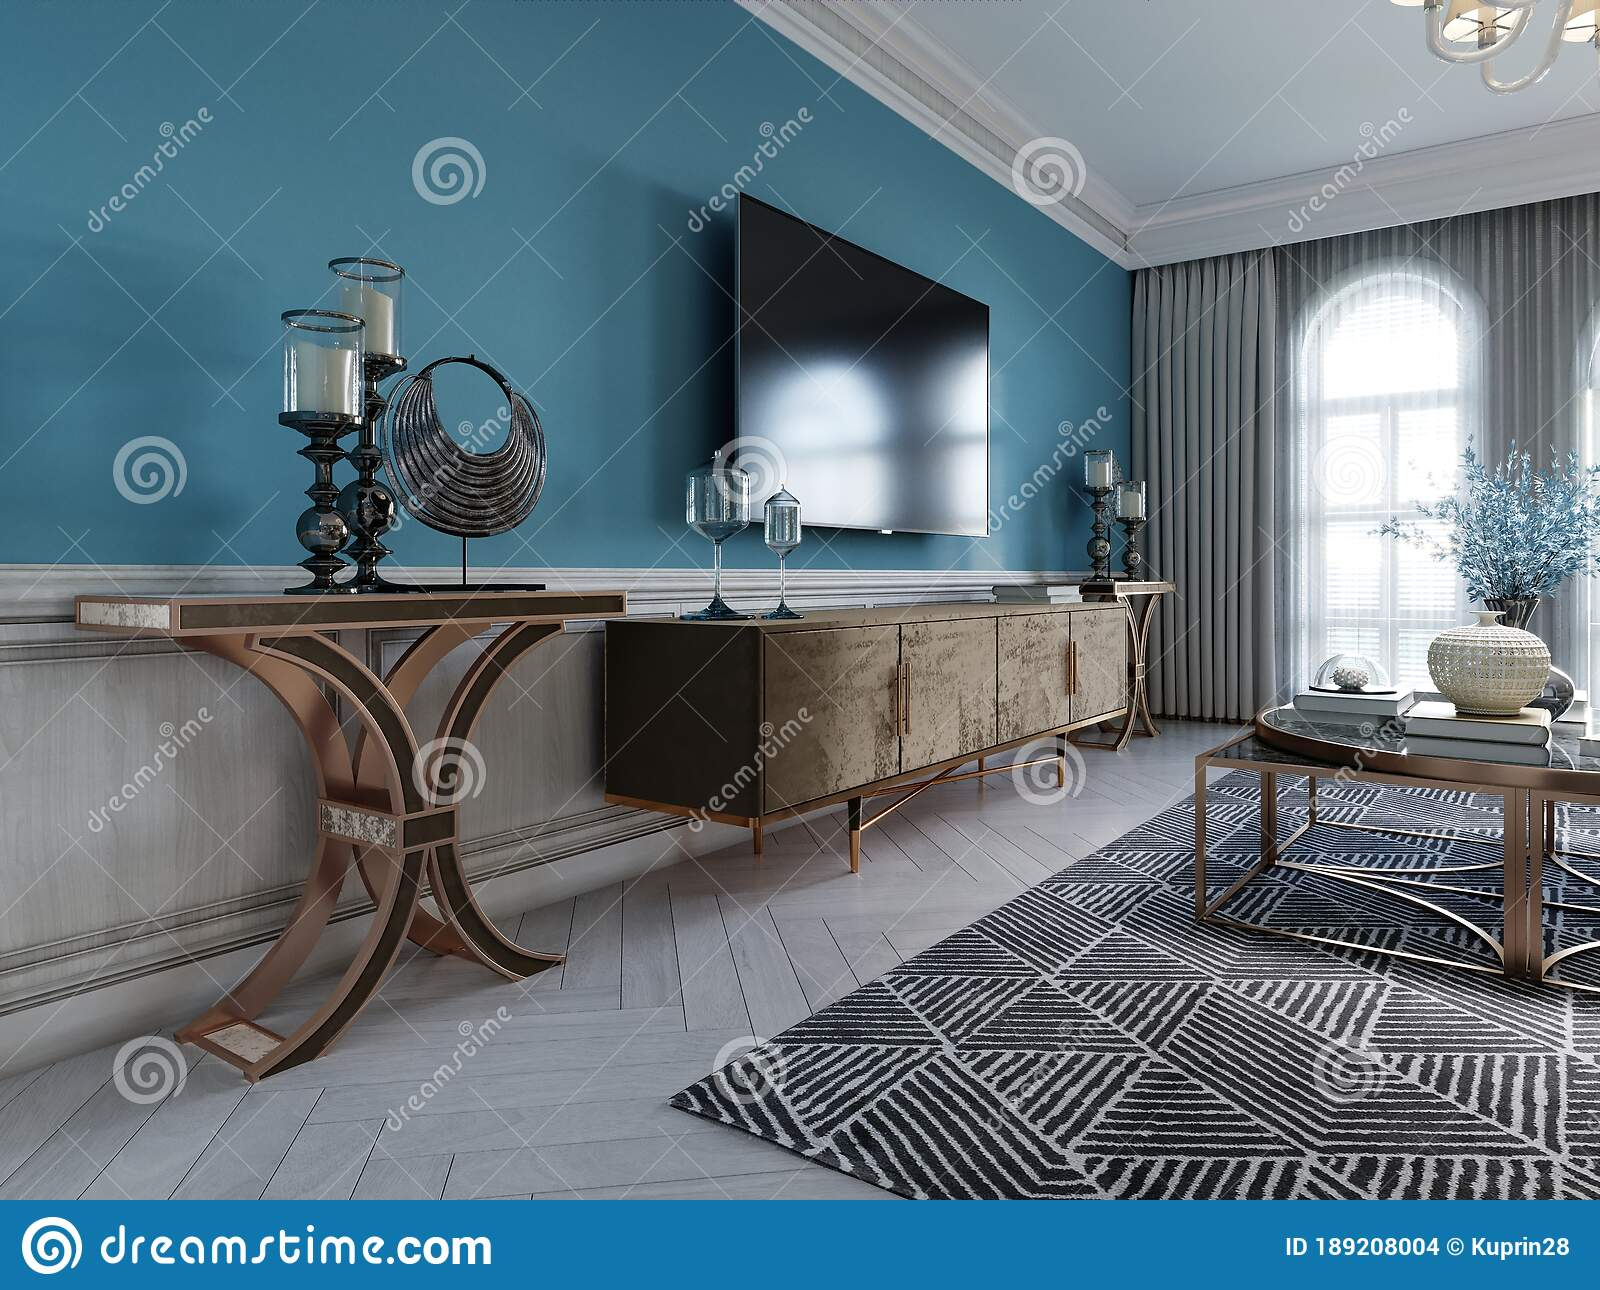 Tv Unit Tv Set In A Modern Living Room In A Classic Style With Blue Walls Black Tv Cabinet Console Table With Interior Decor Stock Illustration Illustration Of Living Furniture 189208004